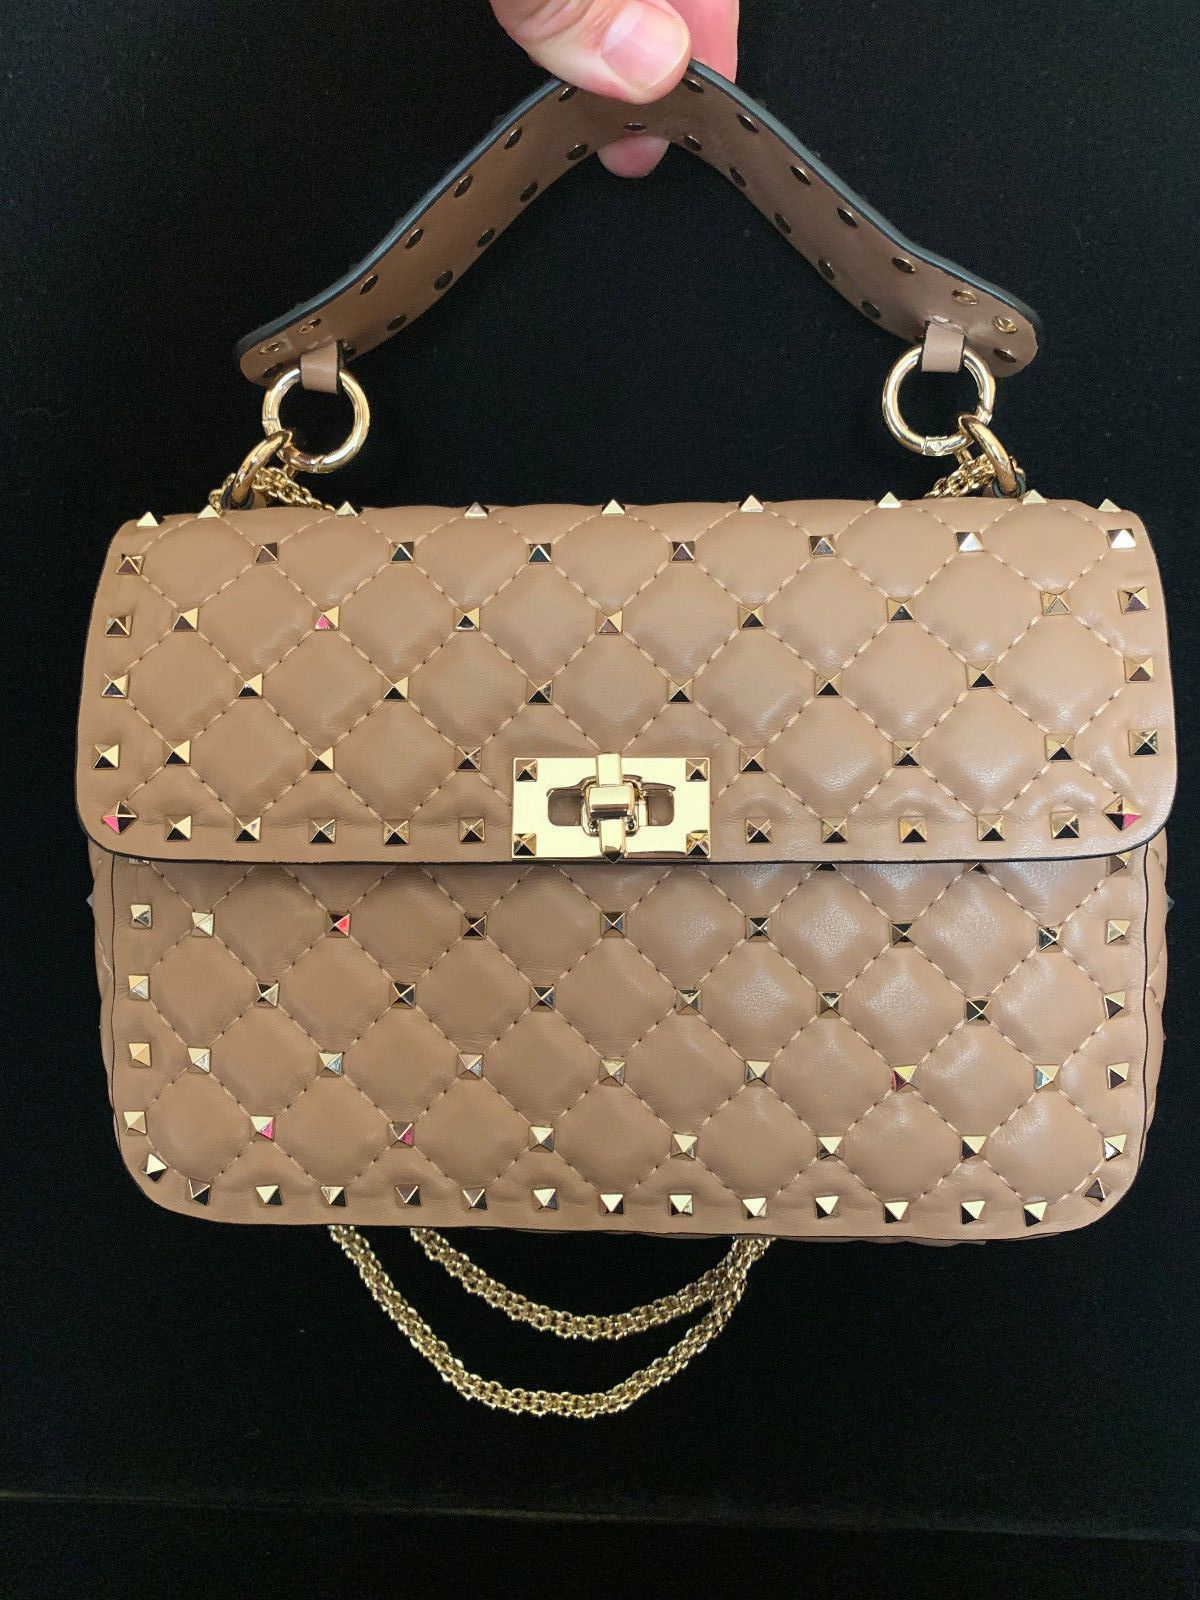 cdb00a8e21 Details about Valentino Garavani Rockstud Spike Shoulder Chain Bag ...